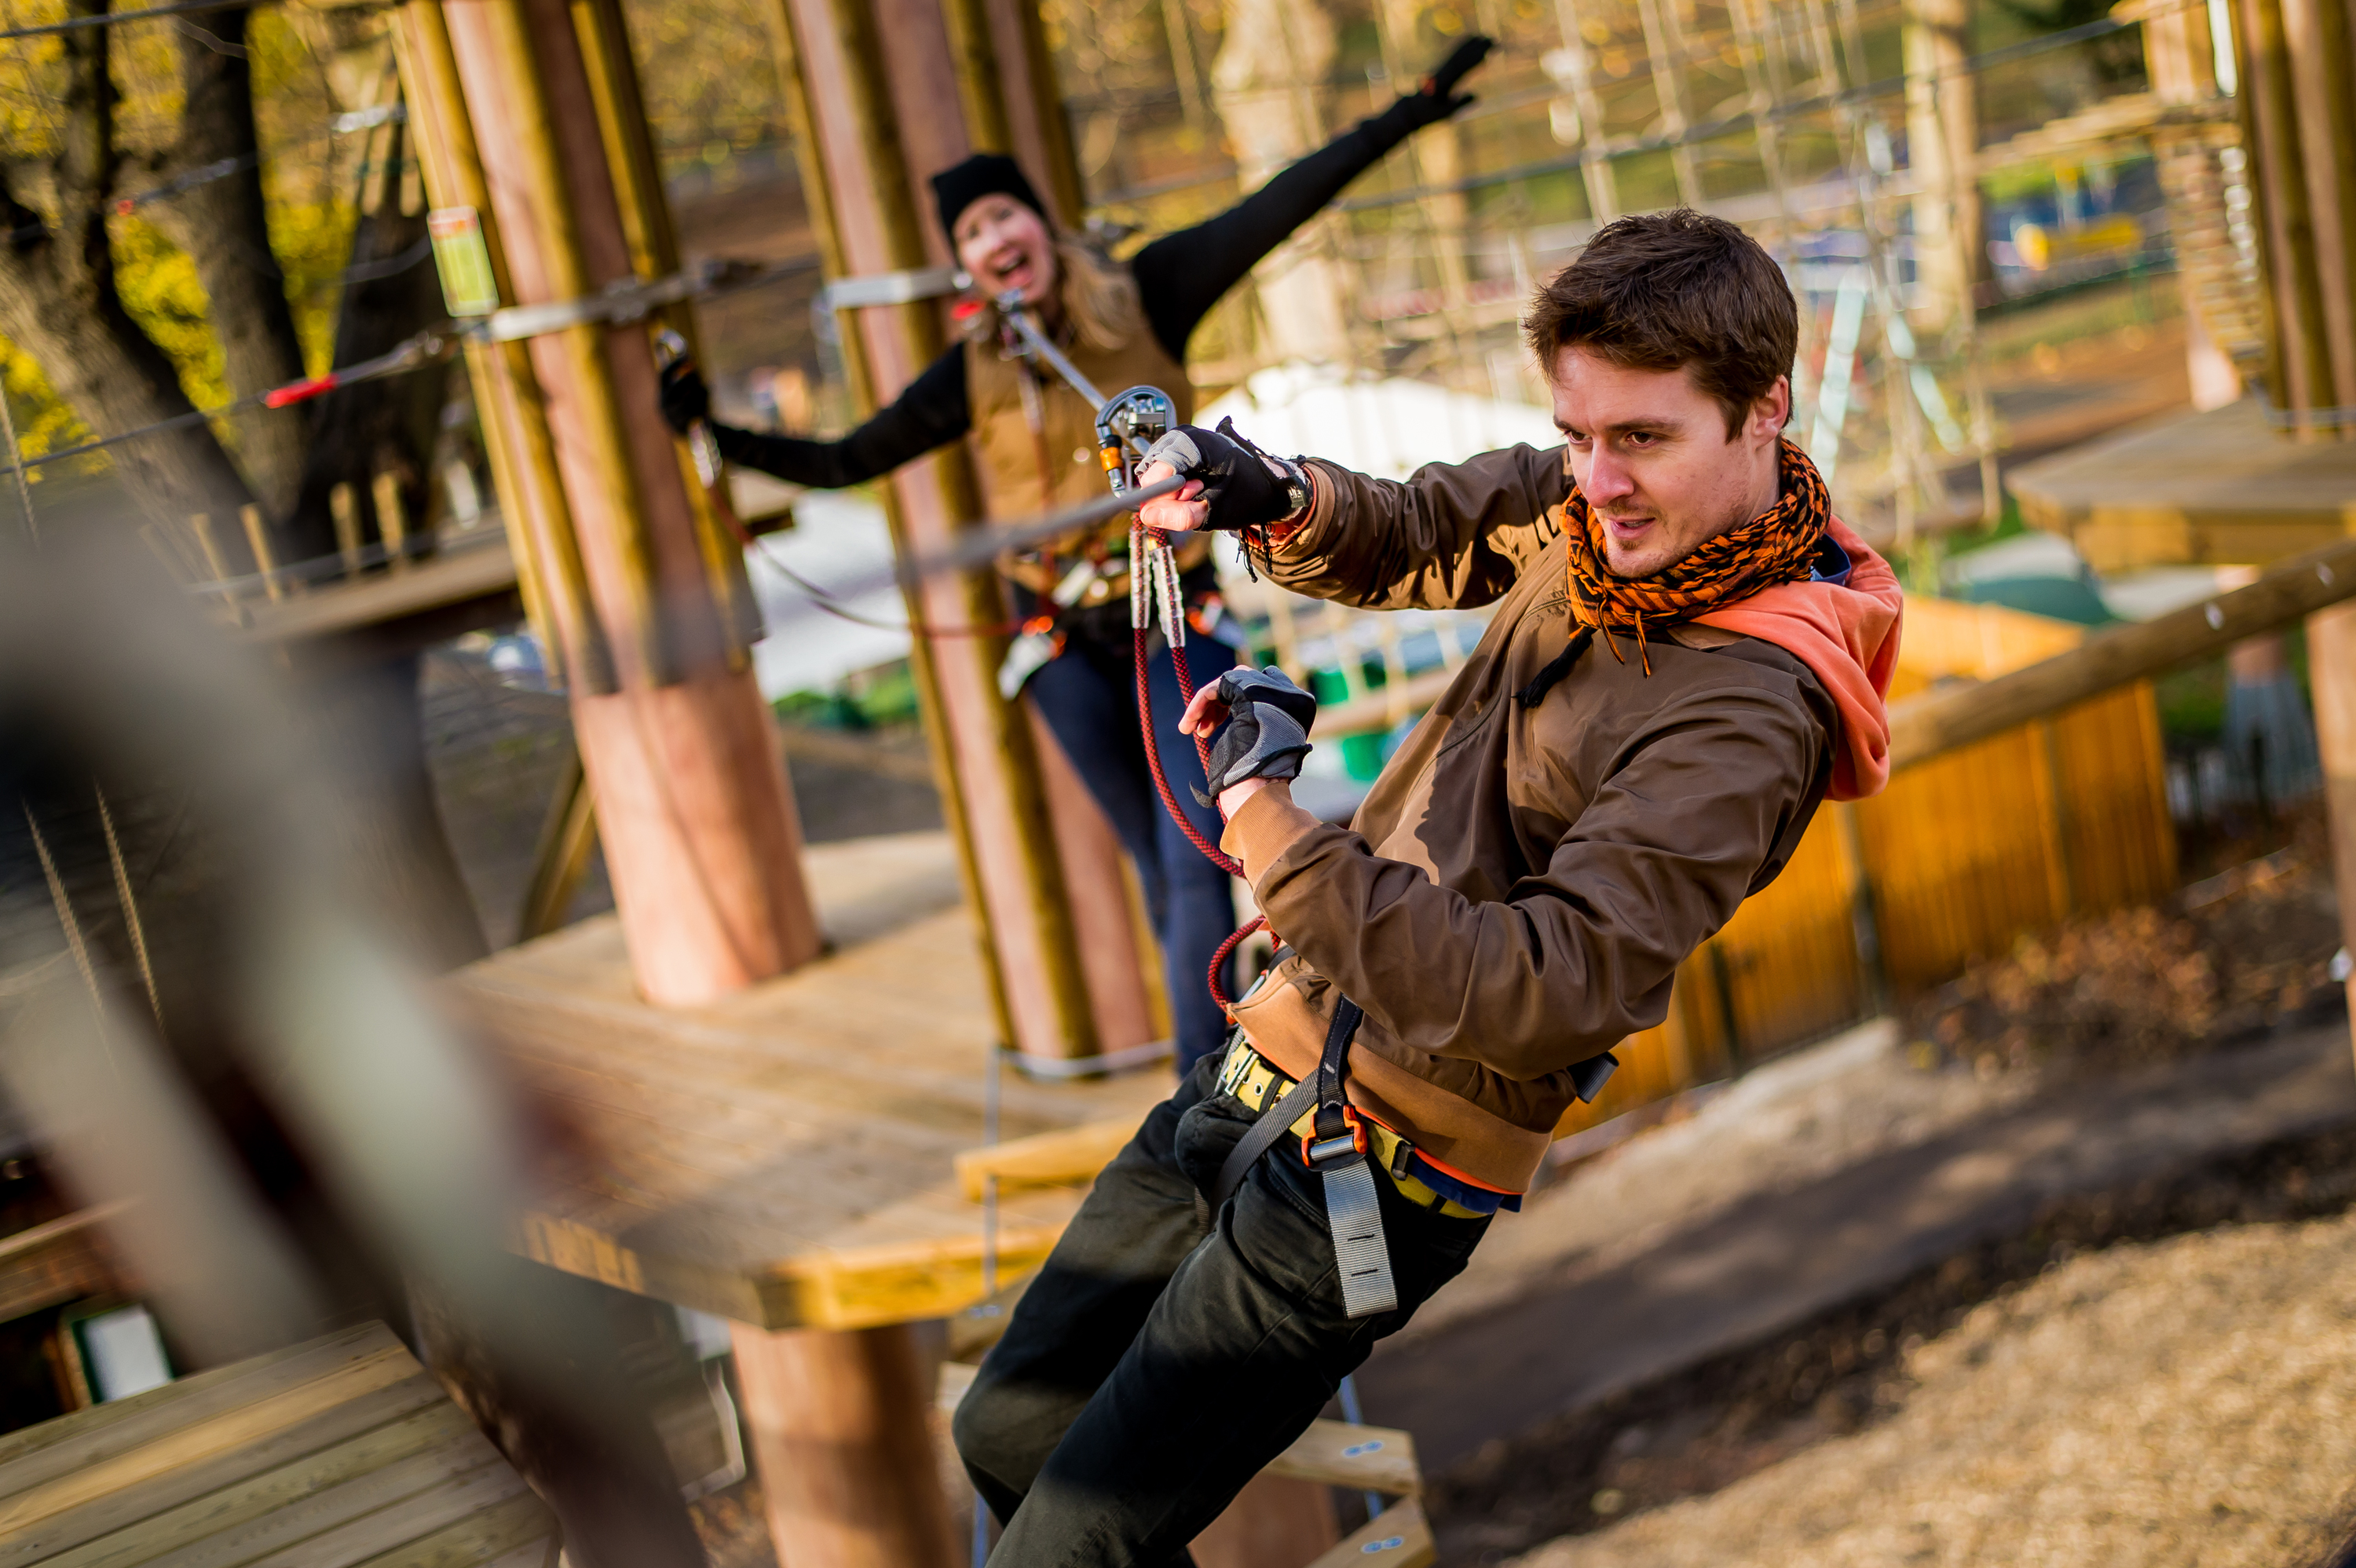 Swing: Go Ape Battersea